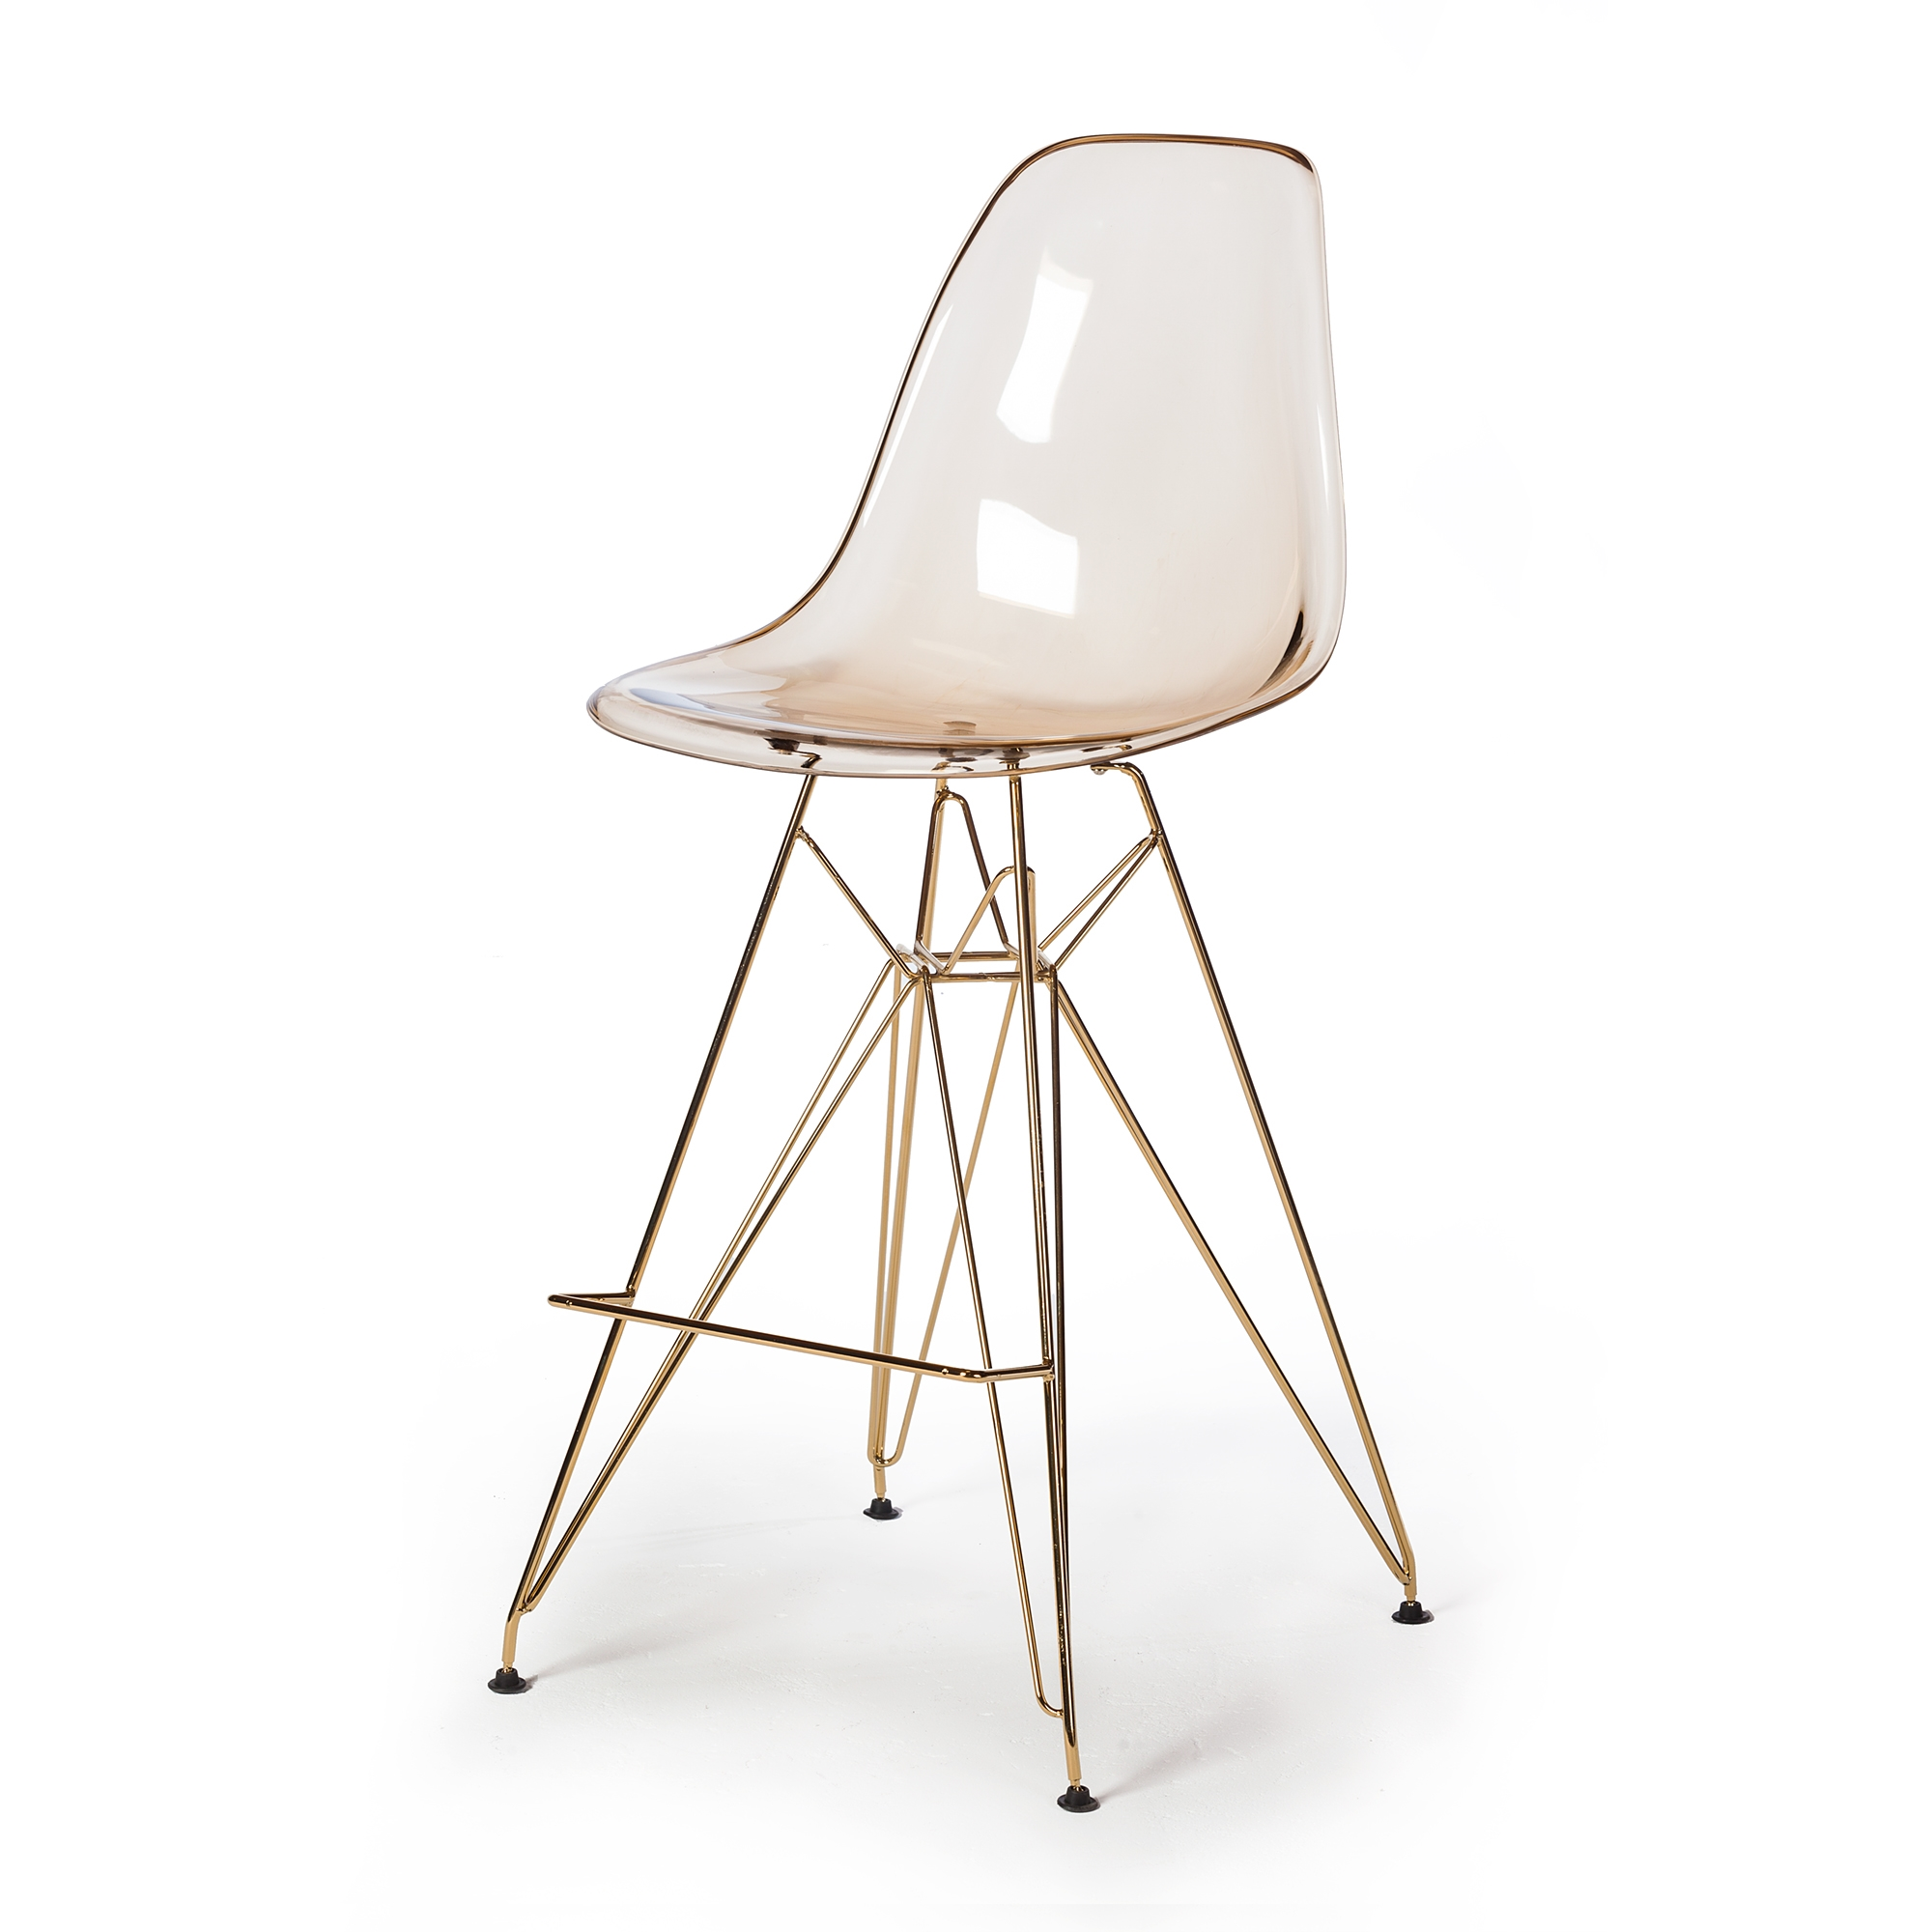 Molded acrylic counter stool in translucent amber and gold finish legs